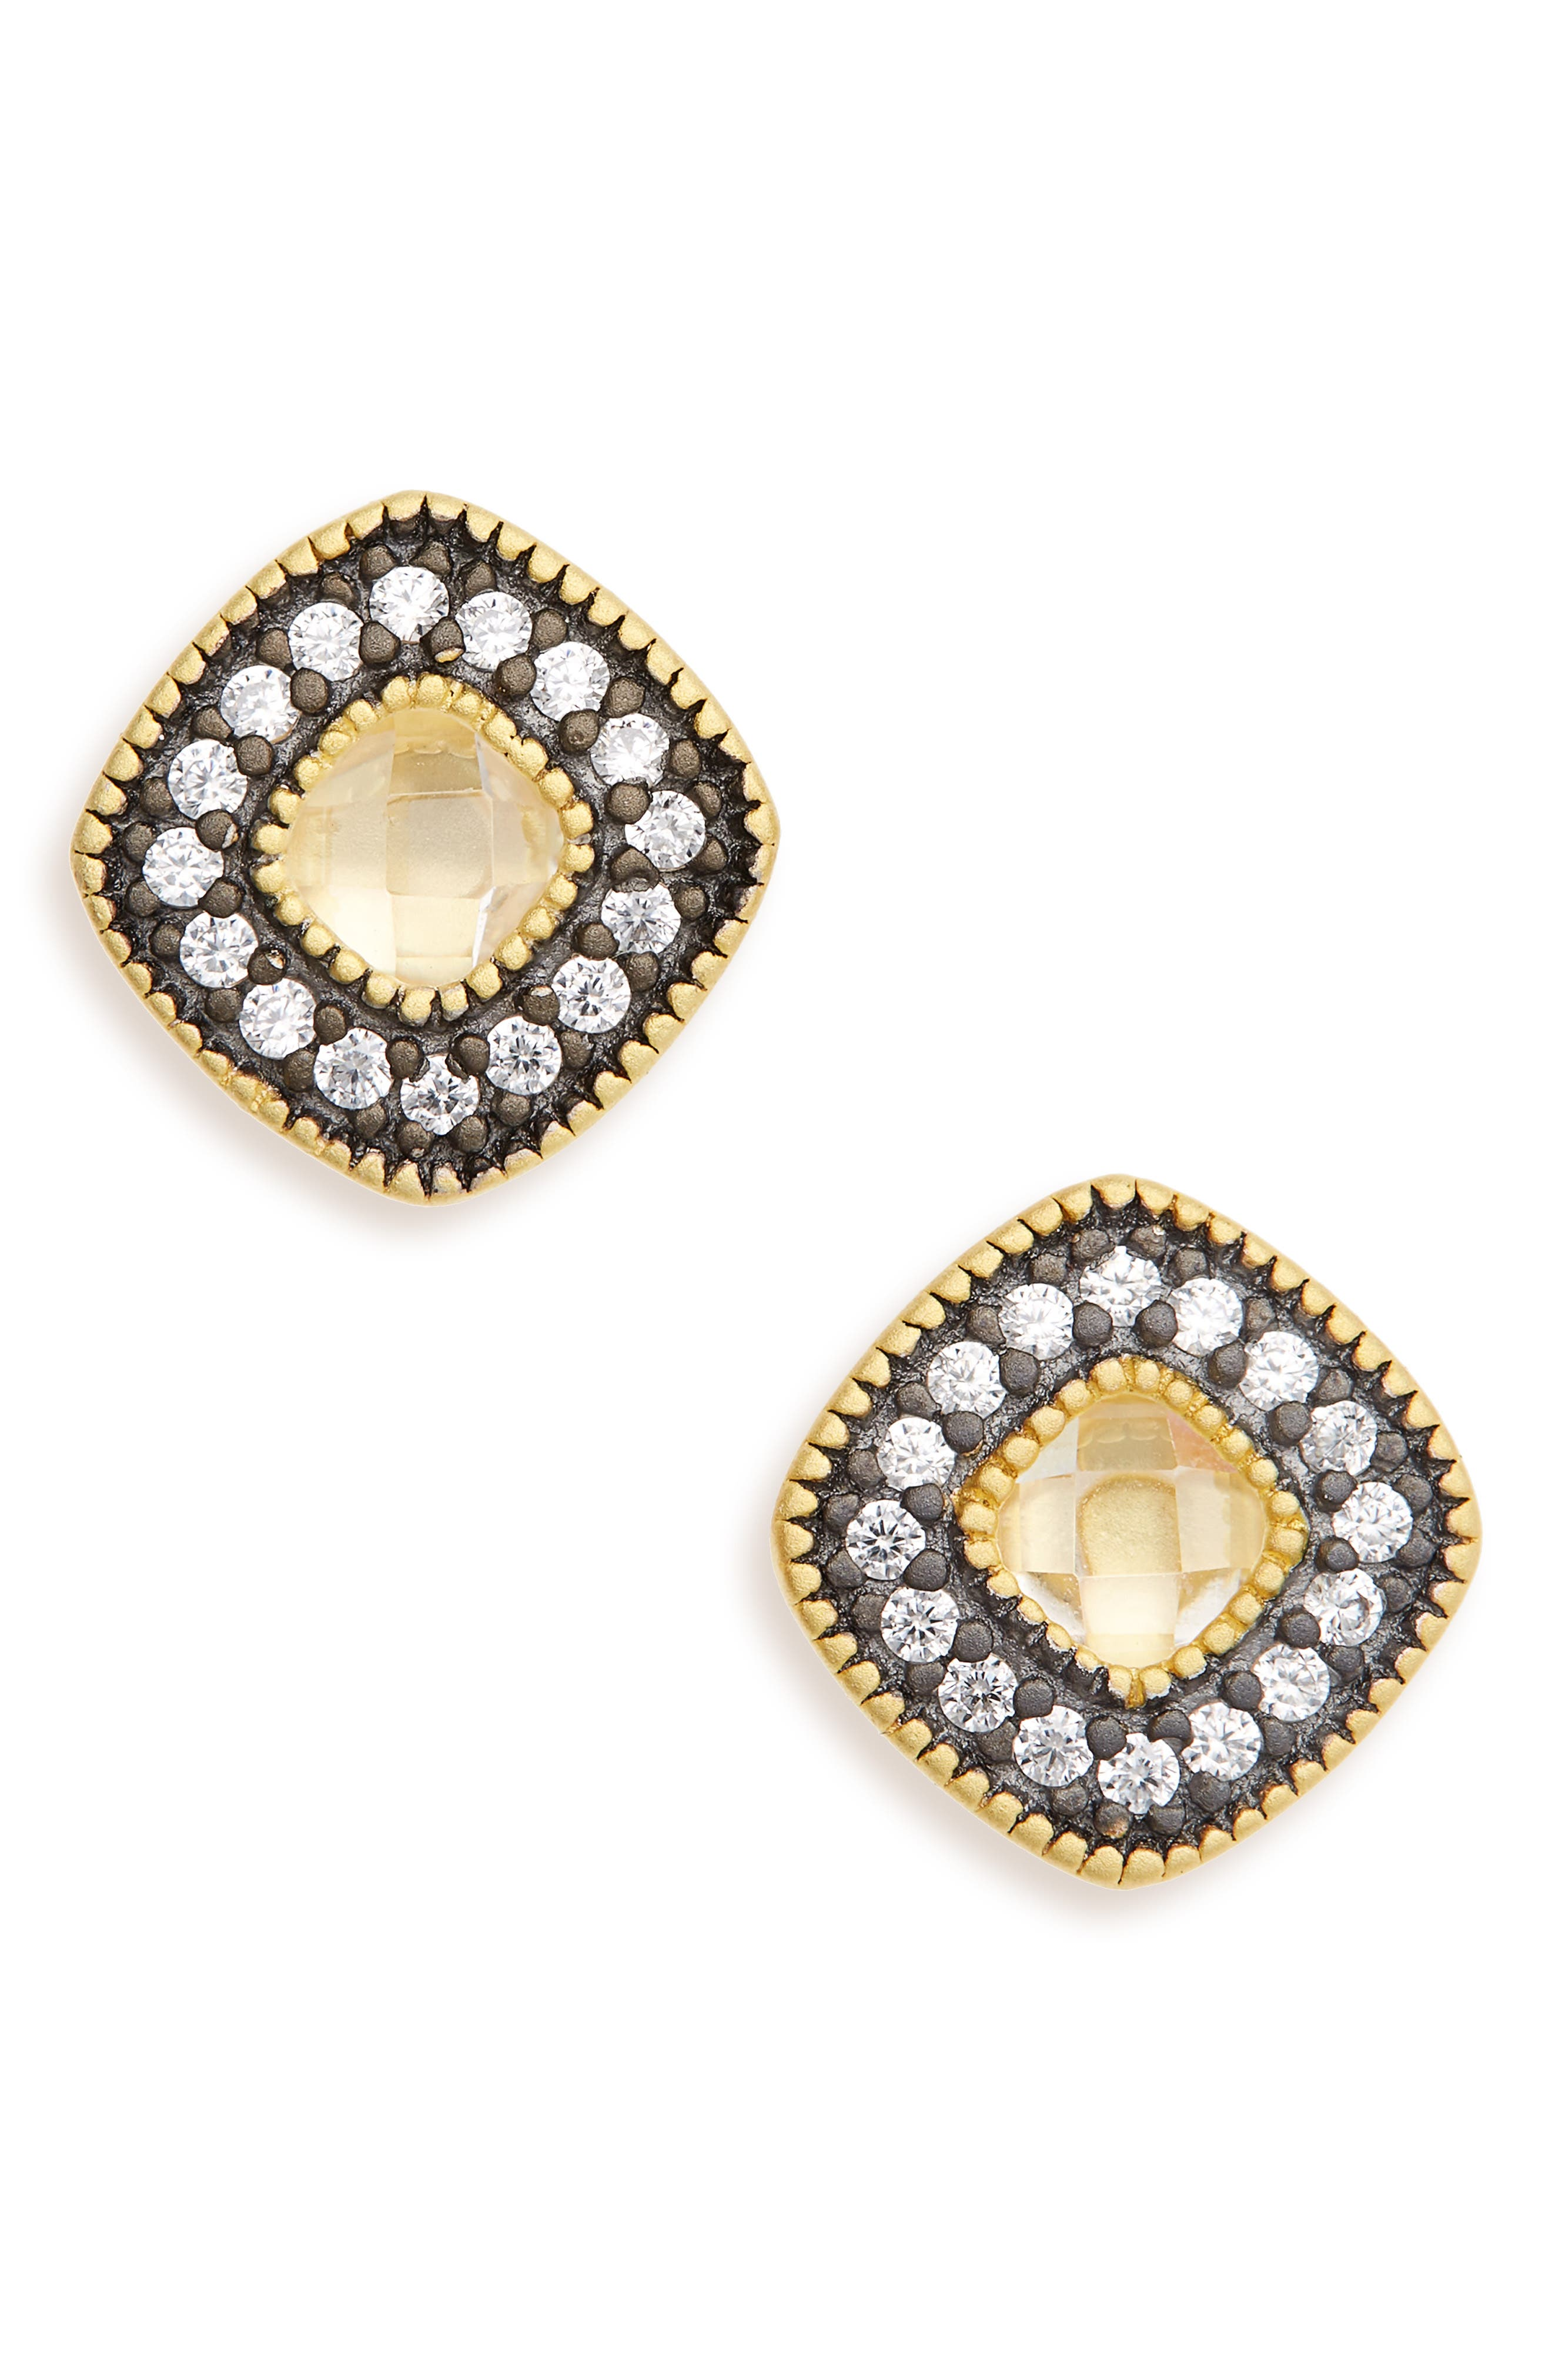 Single Stud Earrings,                         Main,                         color, GOLD/ BLACK